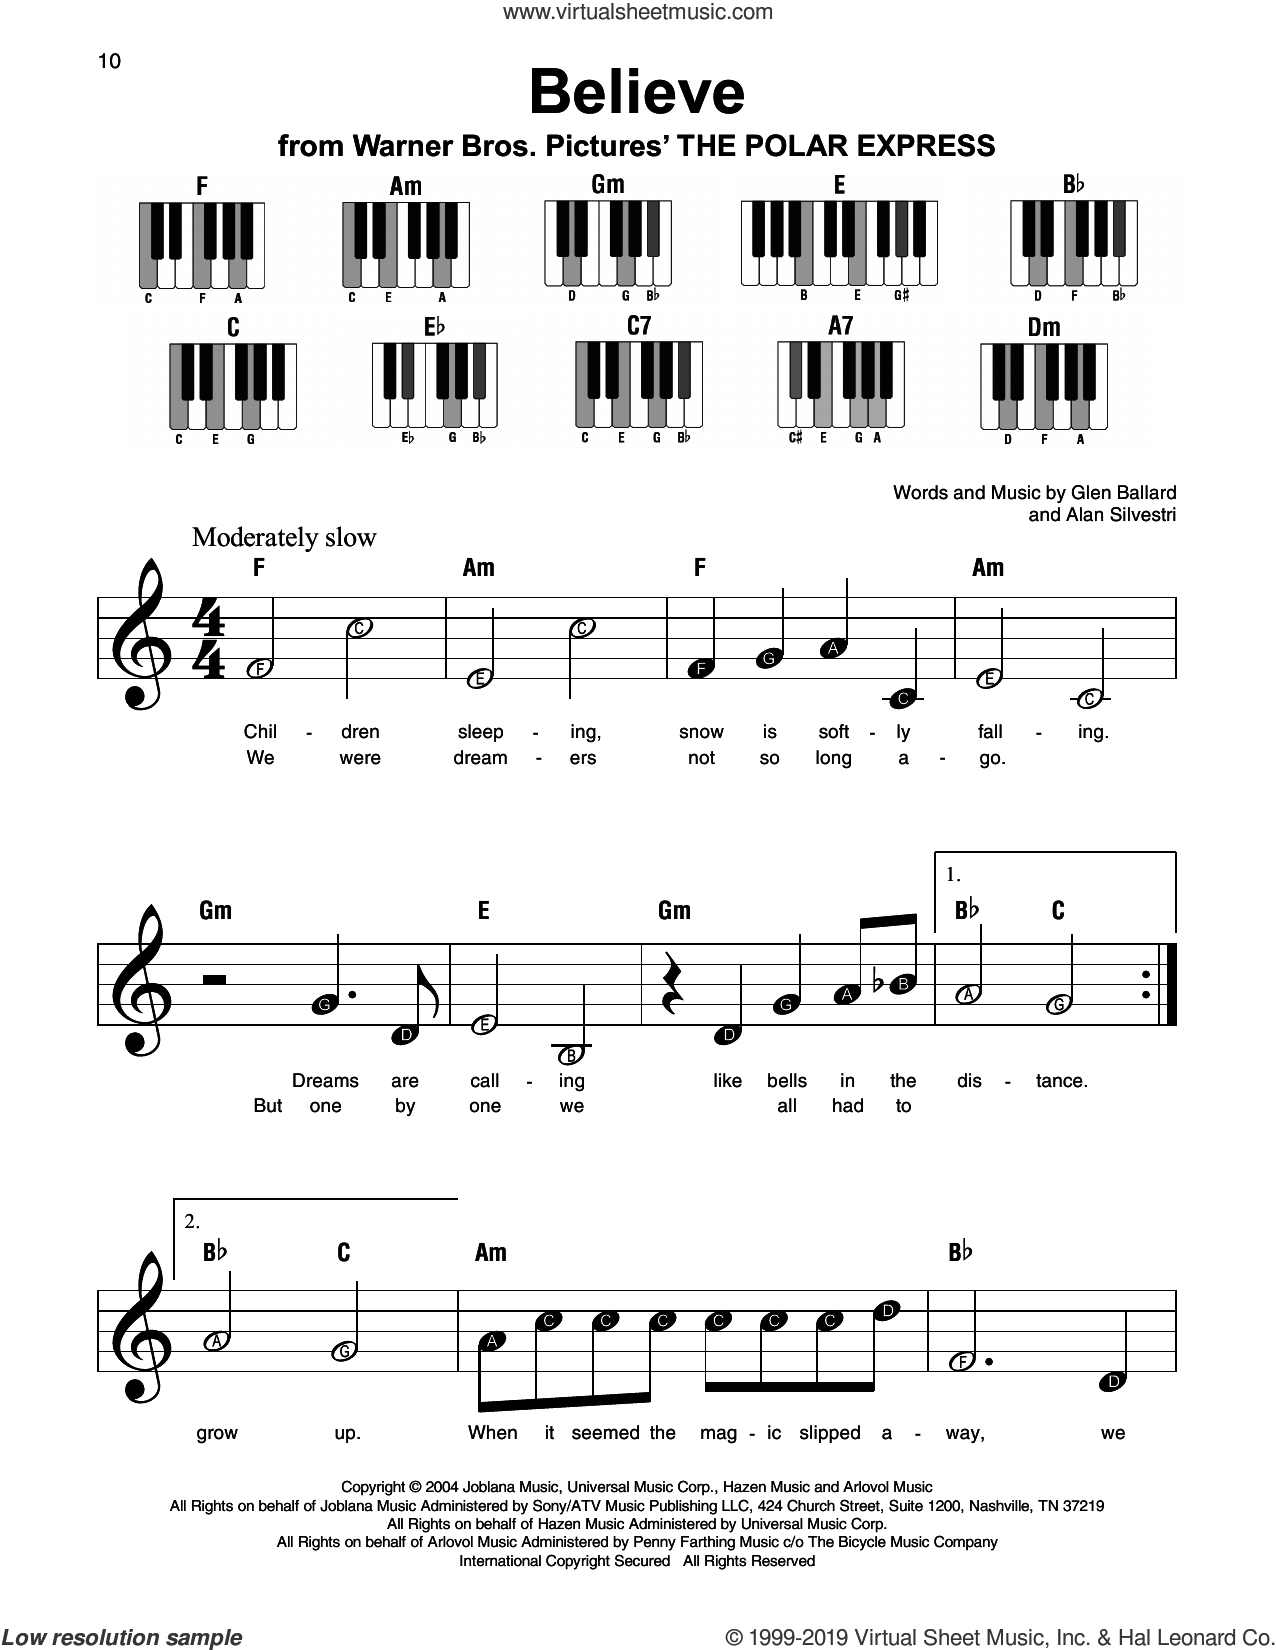 Believe (from The Polar Express) sheet music for piano solo by Josh Groban, Alan Silvestri and Glen Ballard, beginner skill level